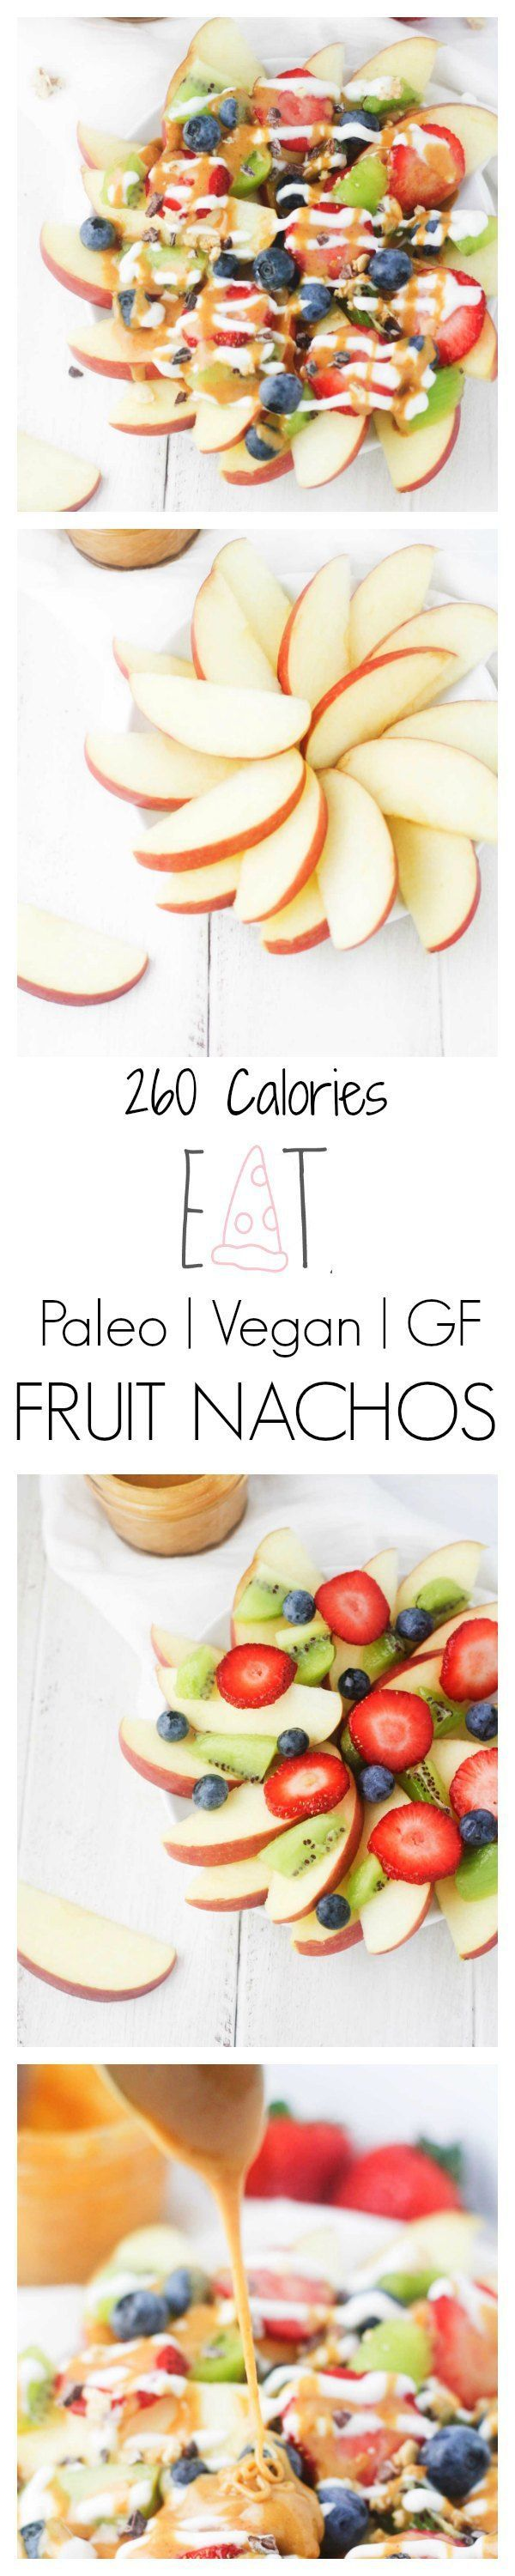 Loaded Fruit Nachos - The perfect game day/movie night/anytime snack! Apple nacho slices, topped with a variety of fresh fruits, cacao nibs, granola and drizzled with Greek yogurt and a low calorie peanut butter maple drizzle. | It's Cheat Day Everyday